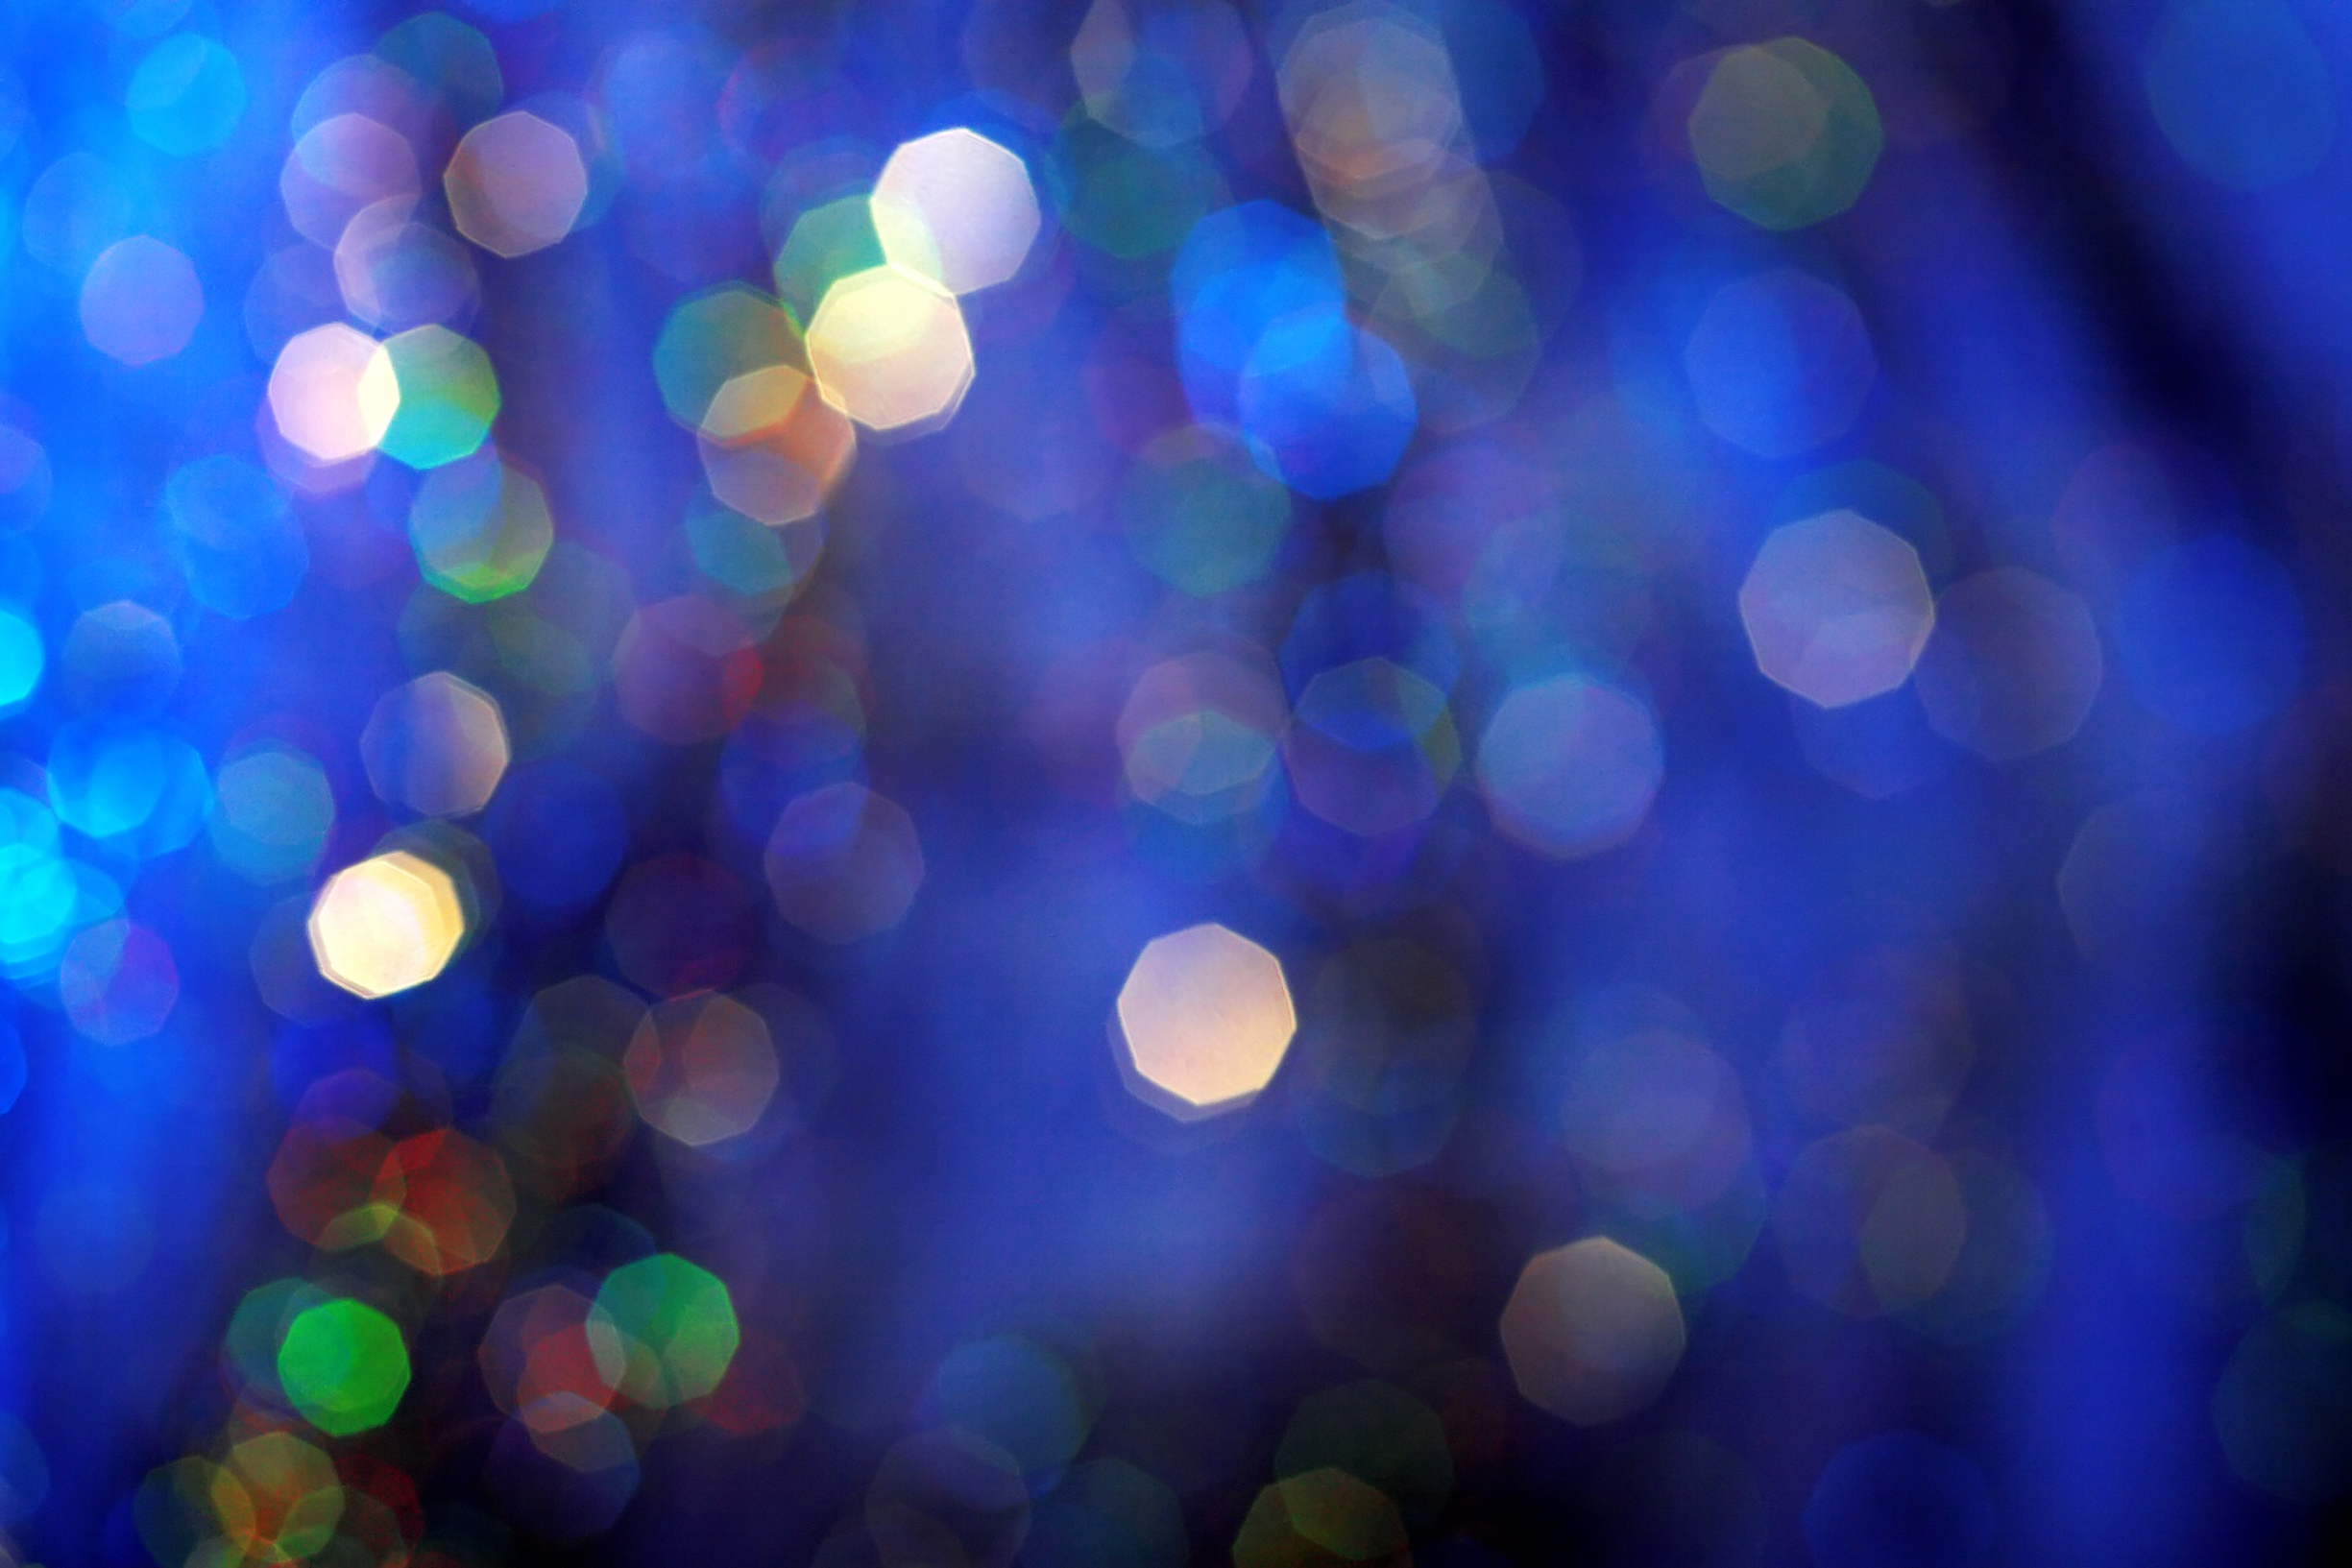 blue christmas light background from